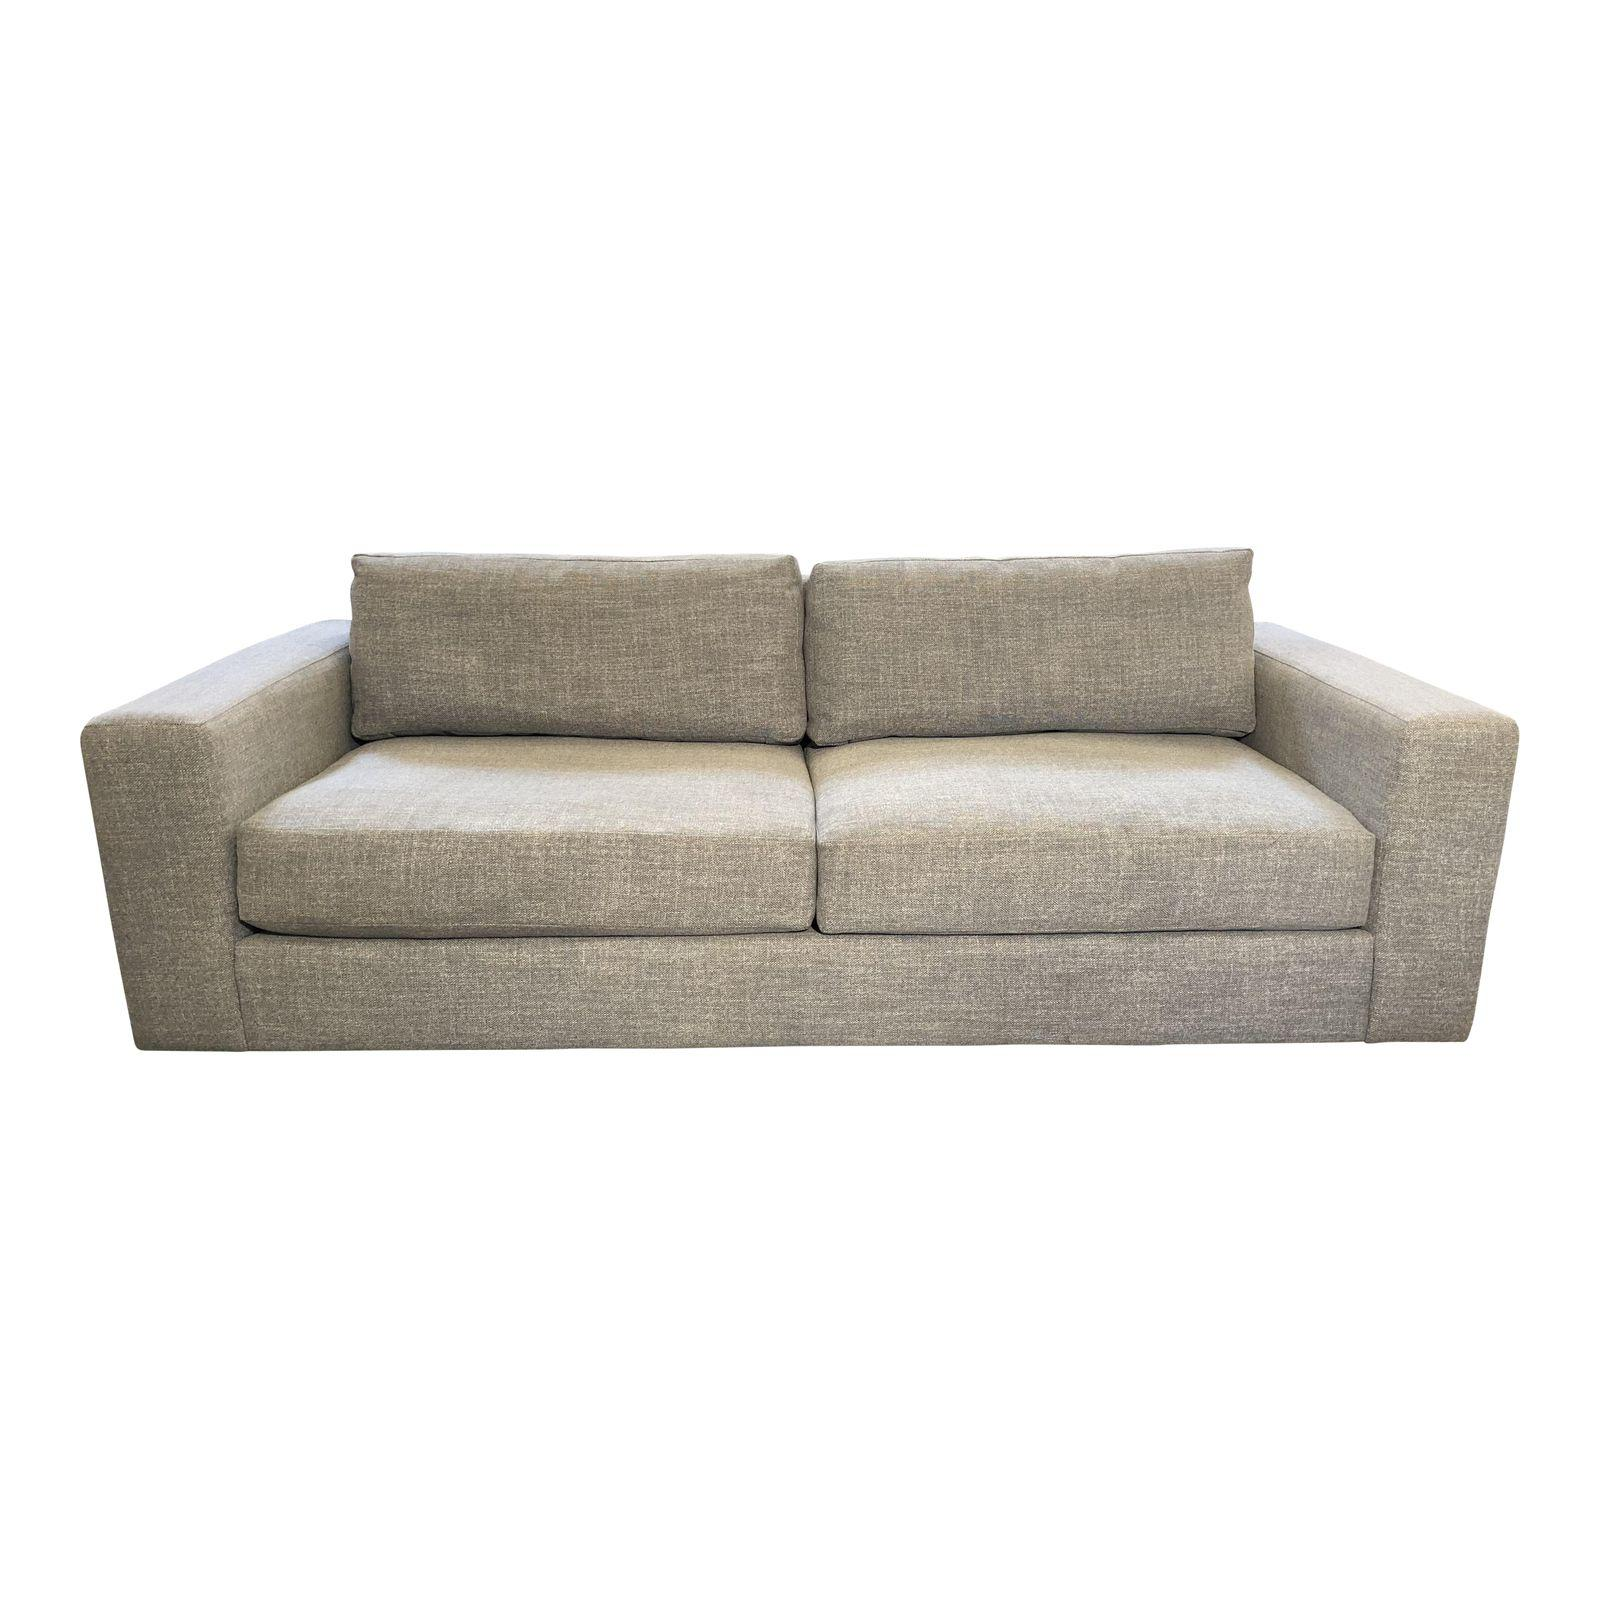 Urban Sofa 2018 West Elm Urban Sofa Original Price 1 499 Design Plus